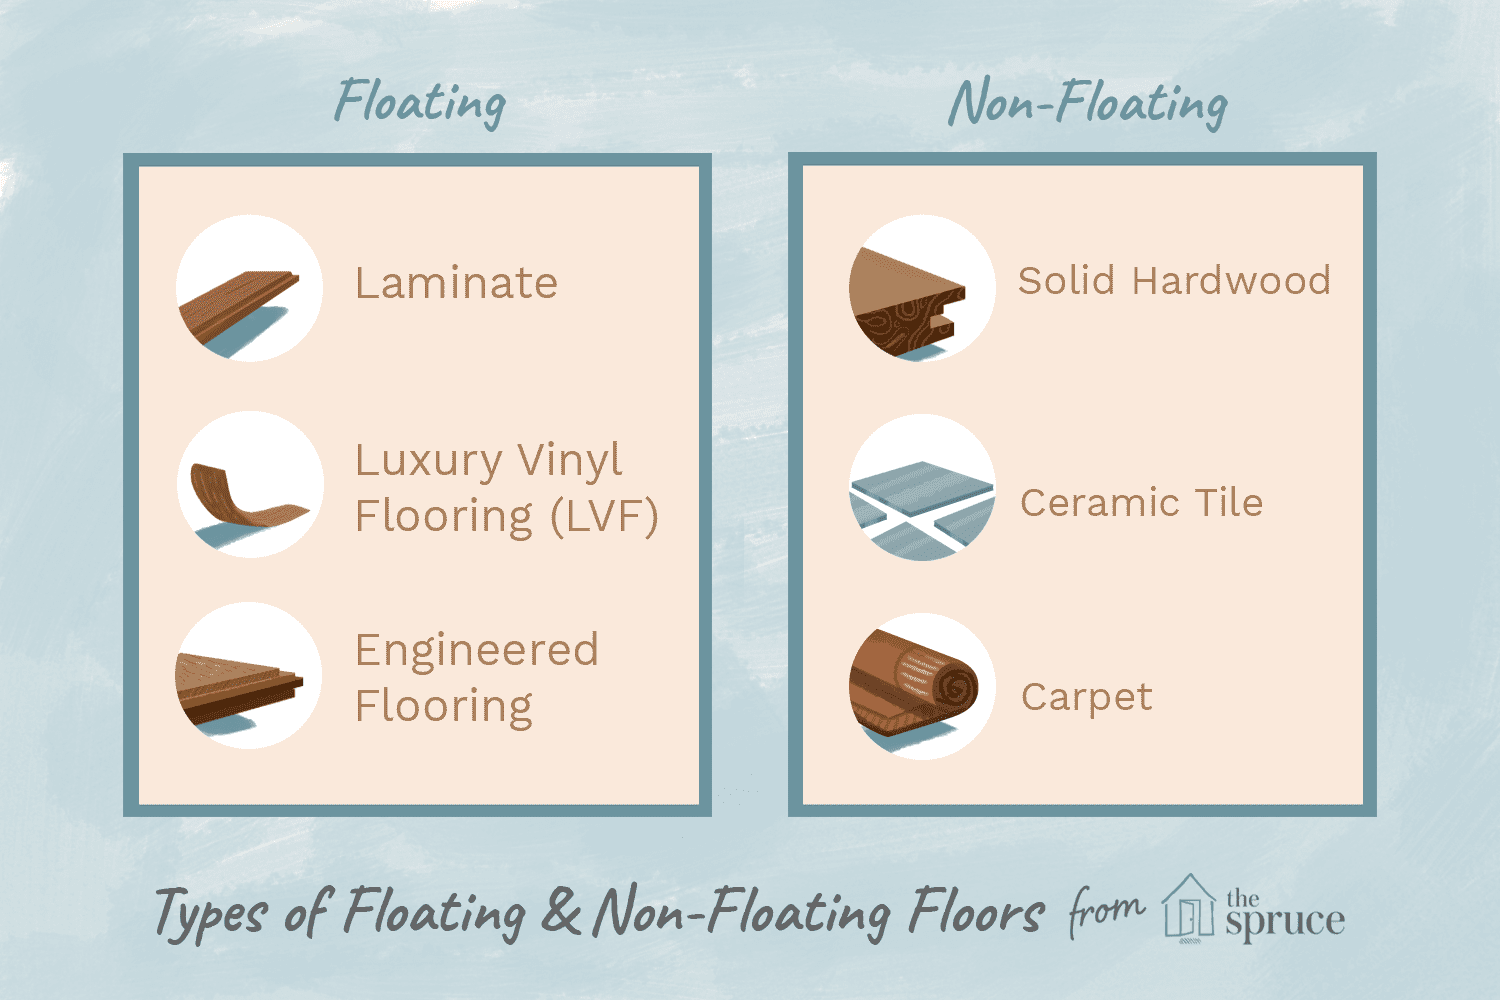 Floating Floors Basics Types And Pros Cons Carpet On Concrete Floor Detail Under Wiring System What Is A